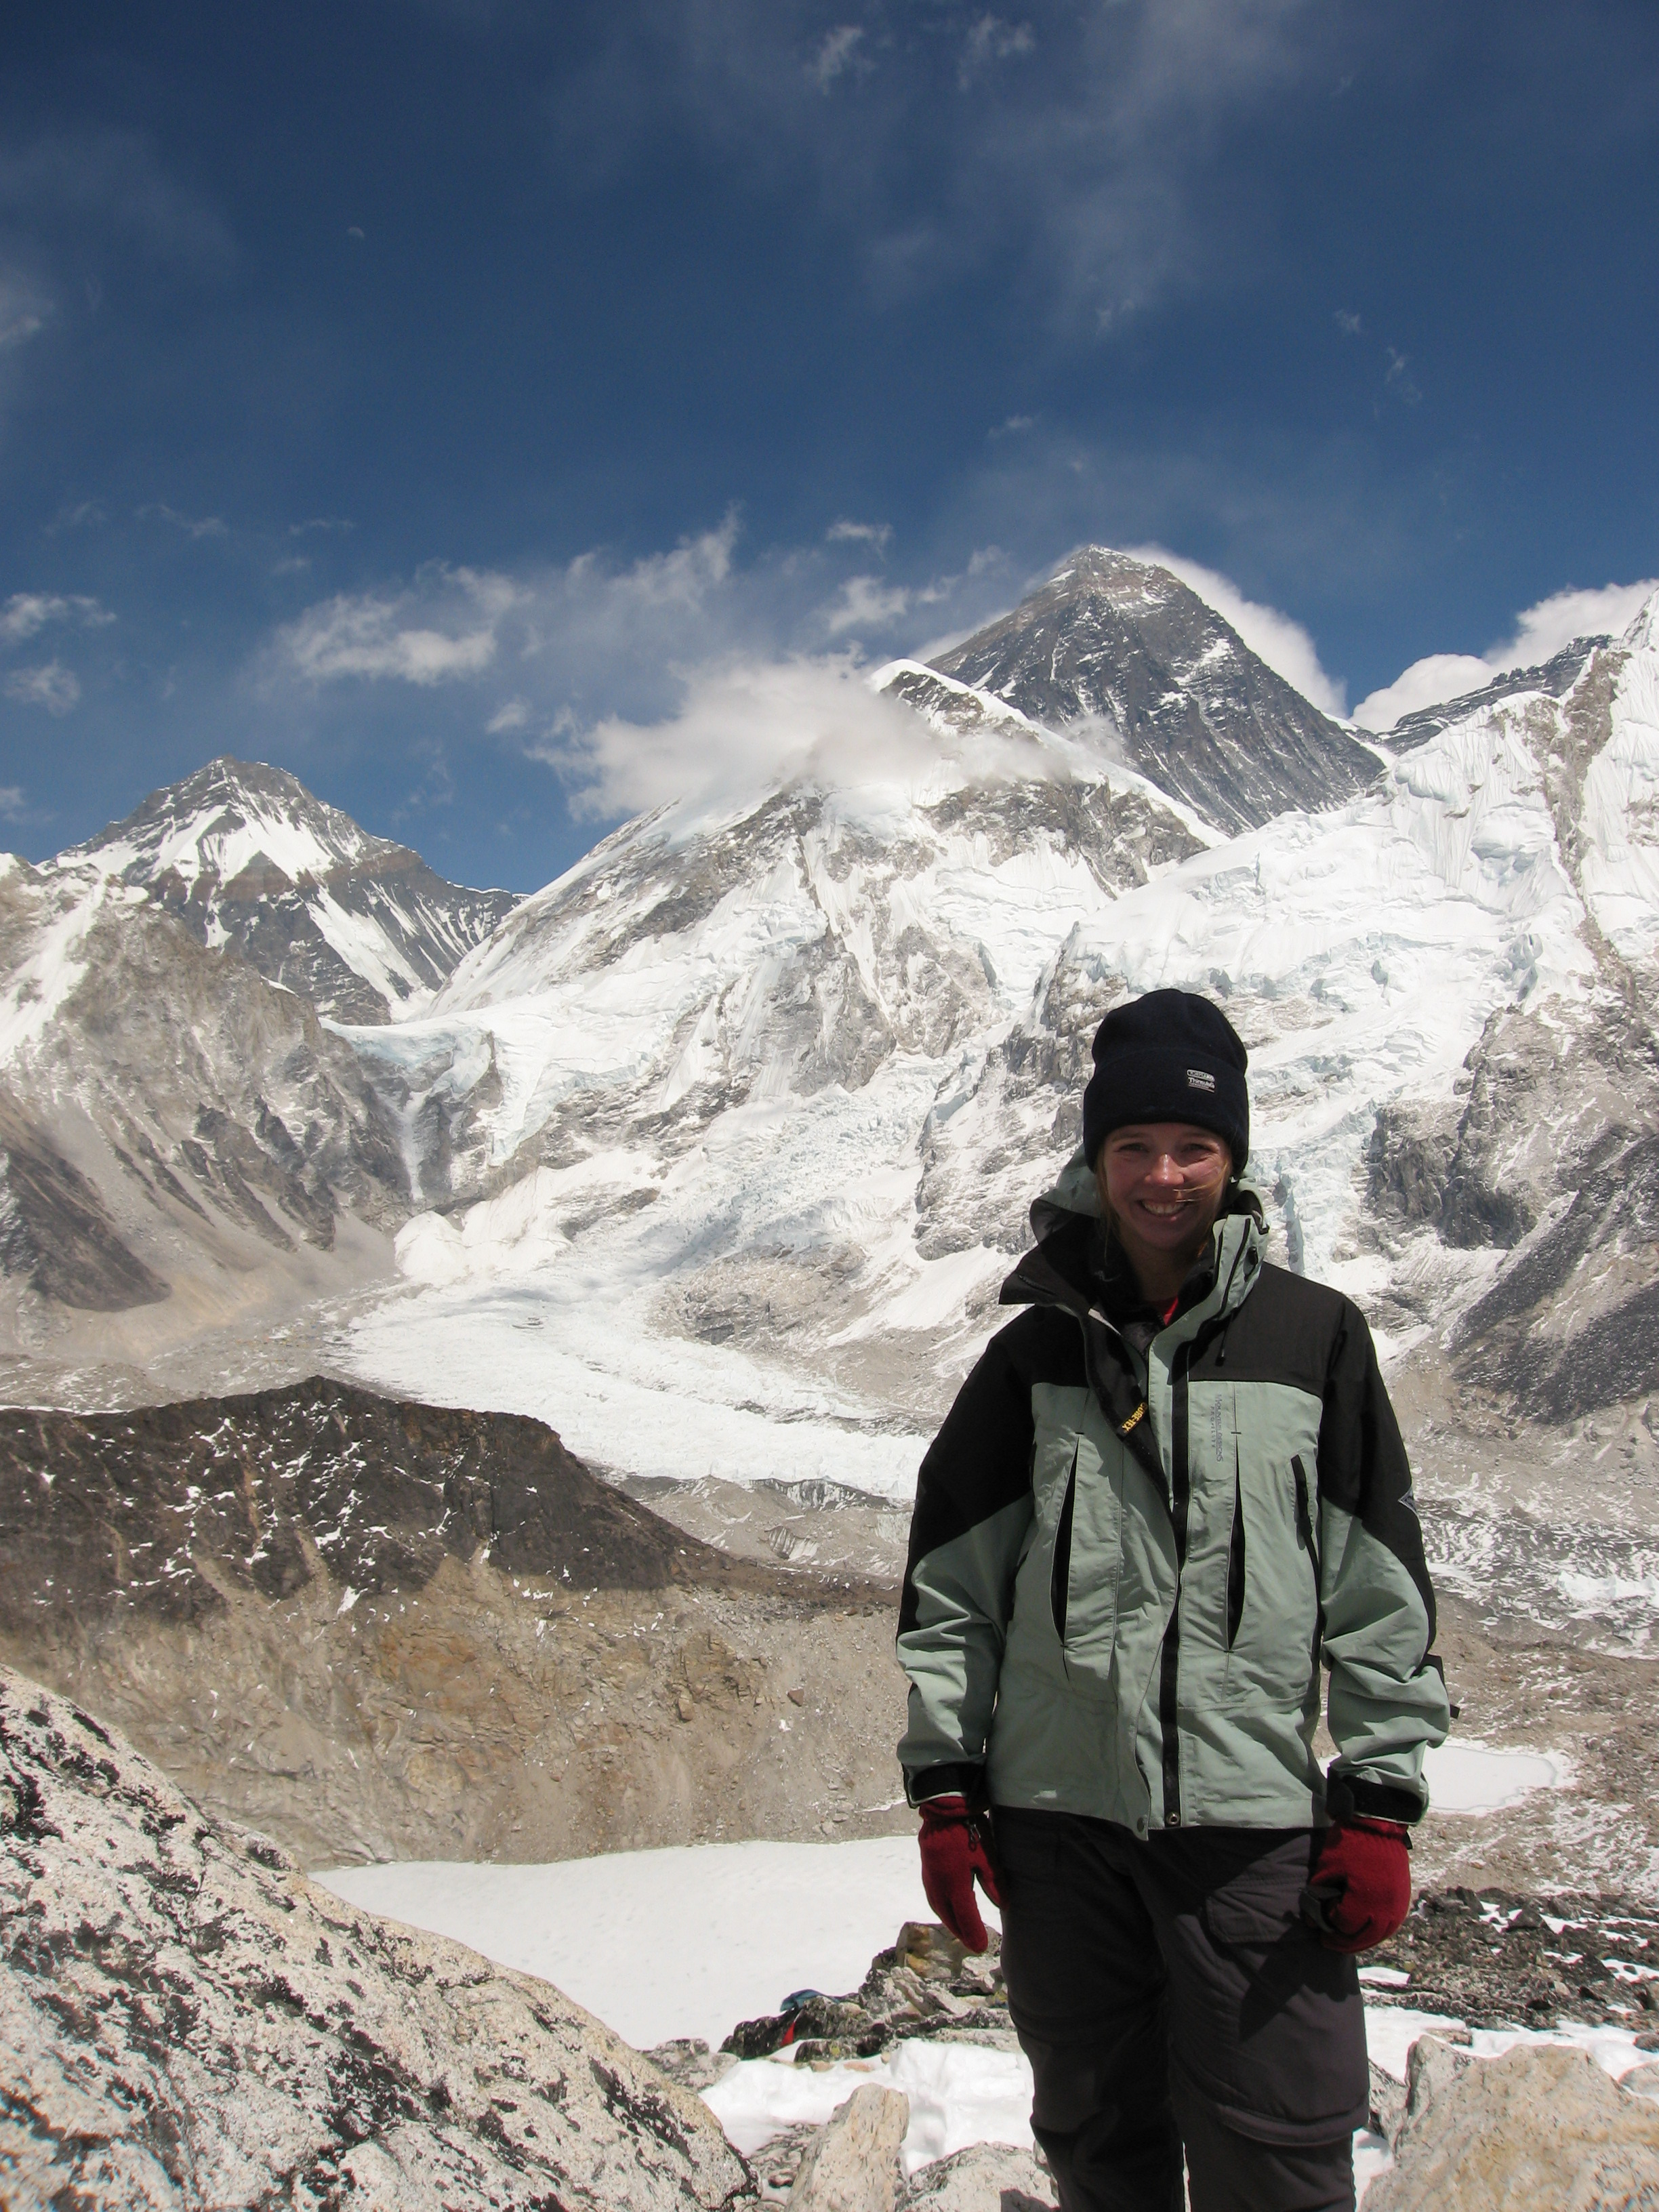 Fiona on the summit of Kala Patar with Everest in the background. Photo Chris Garrard.